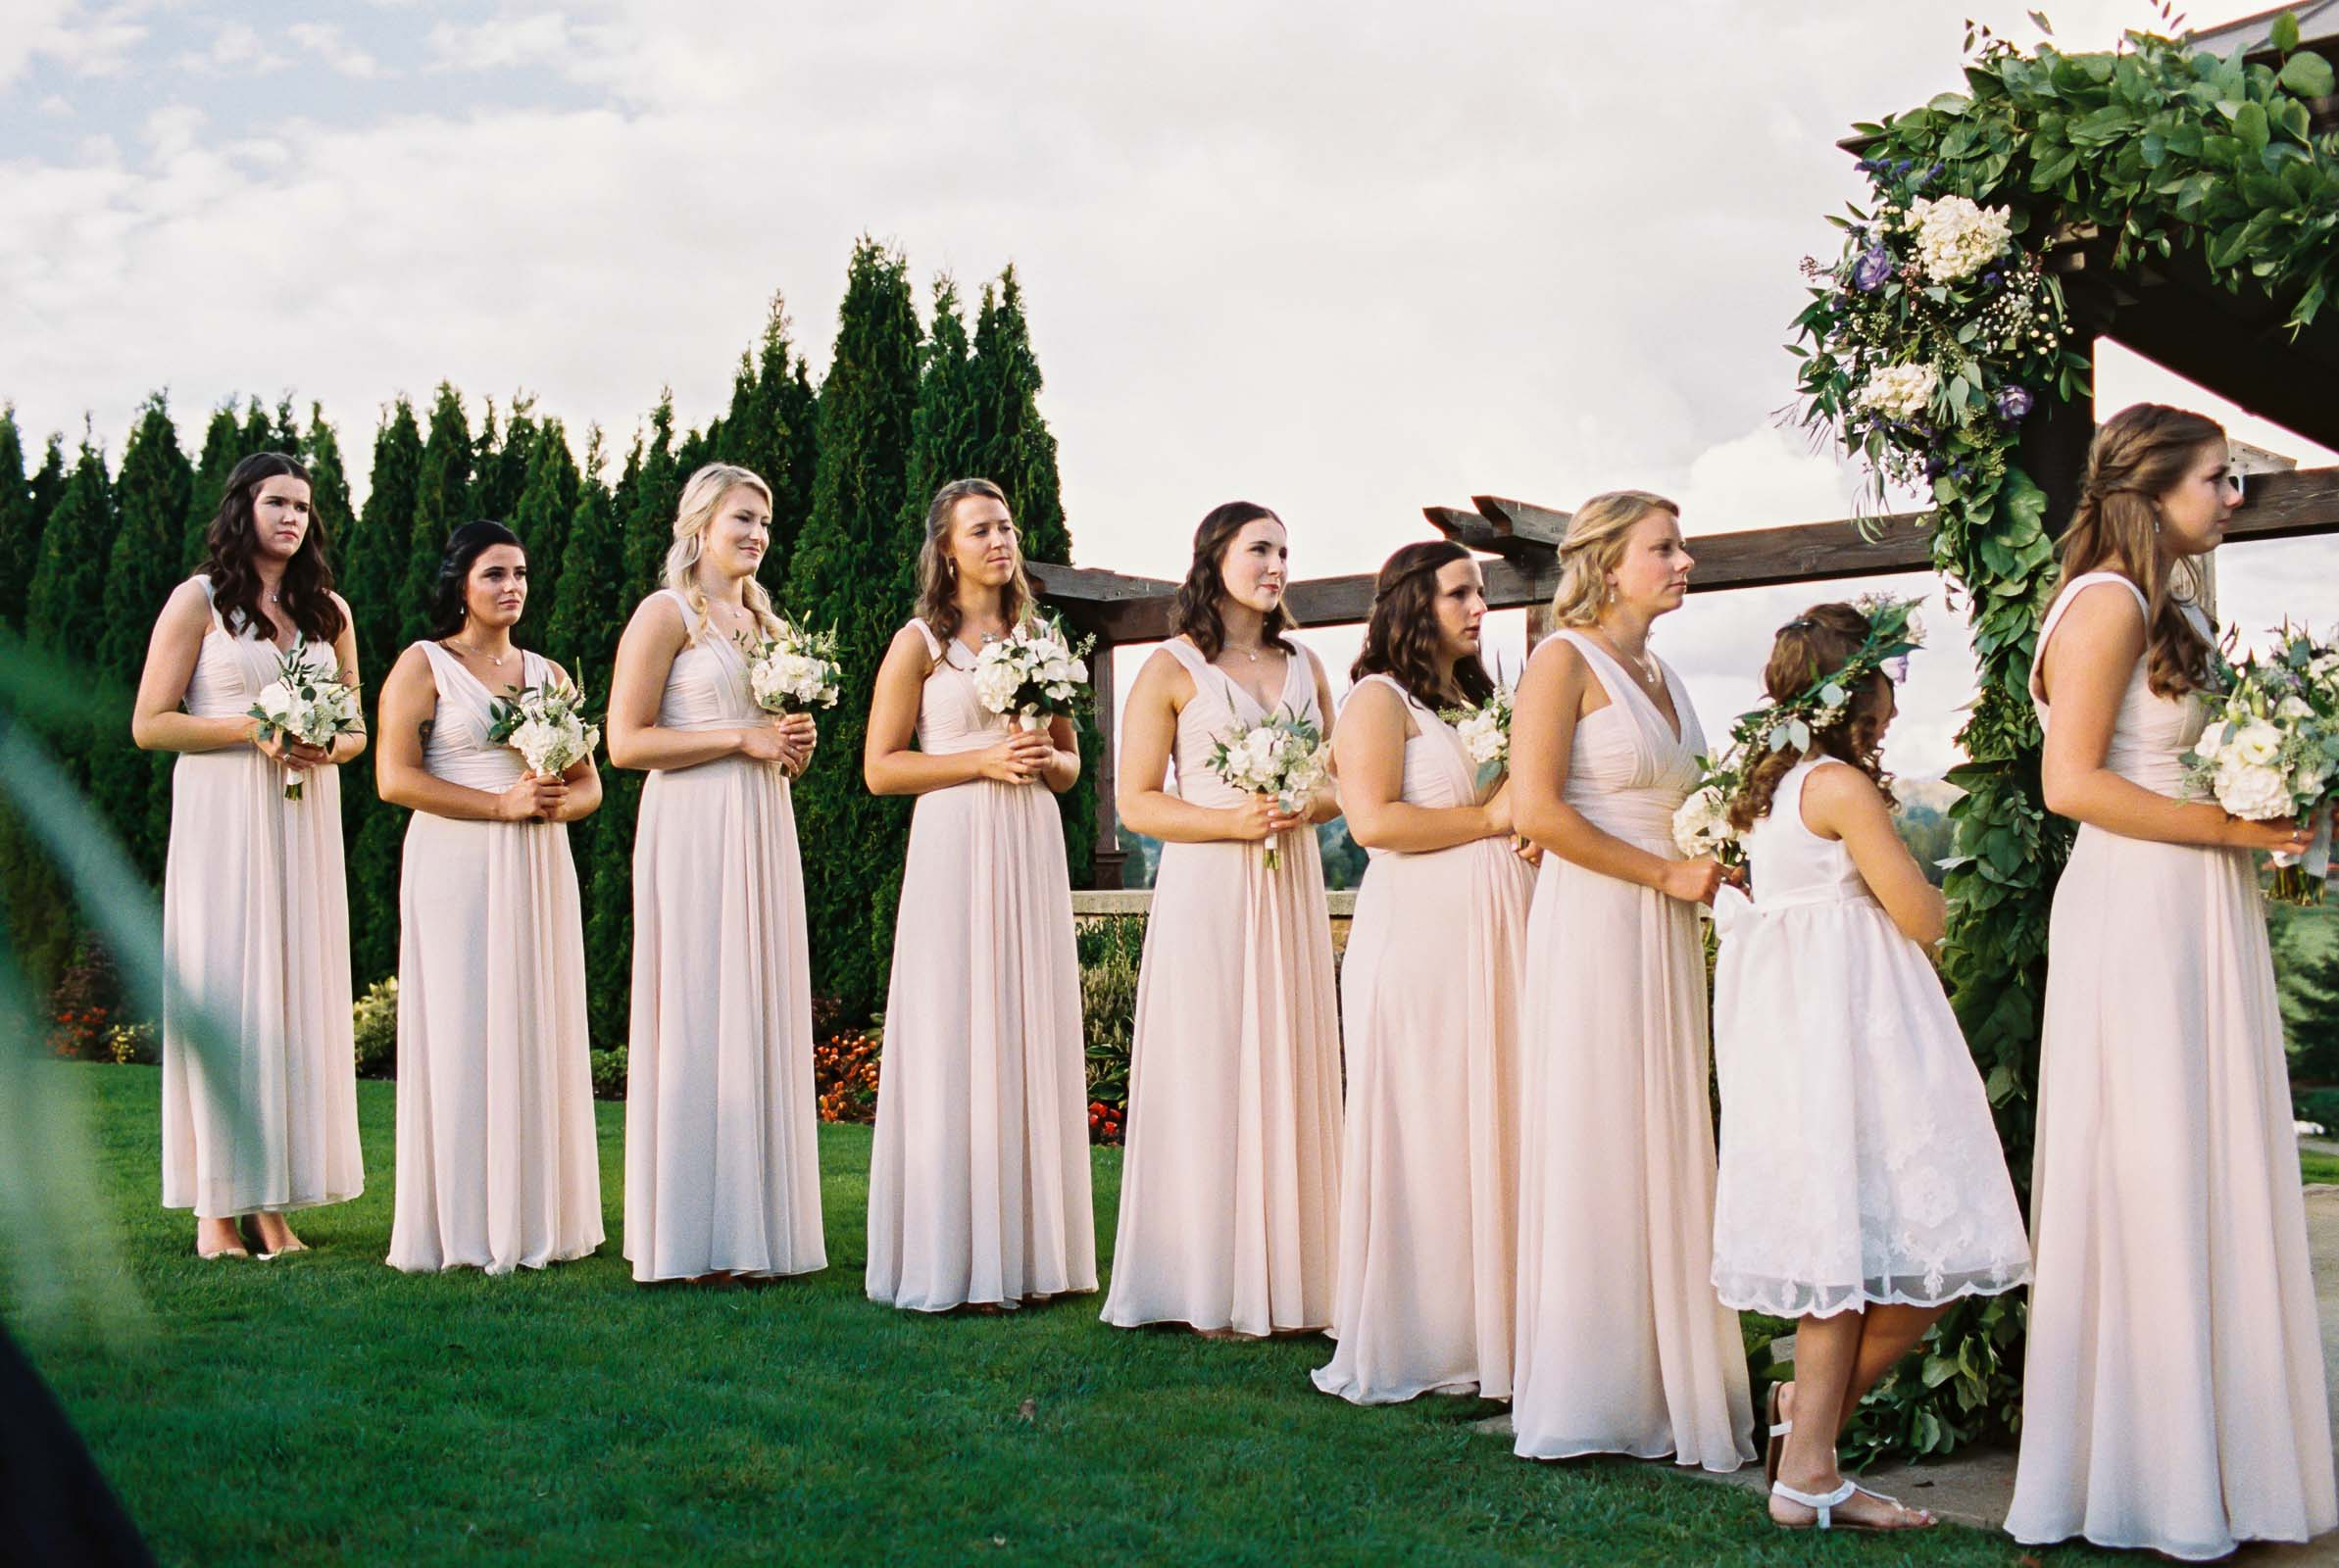 Summer Lord Hill Farms wedding ceremony photographed by Seattle wedding photographer Anna Peters